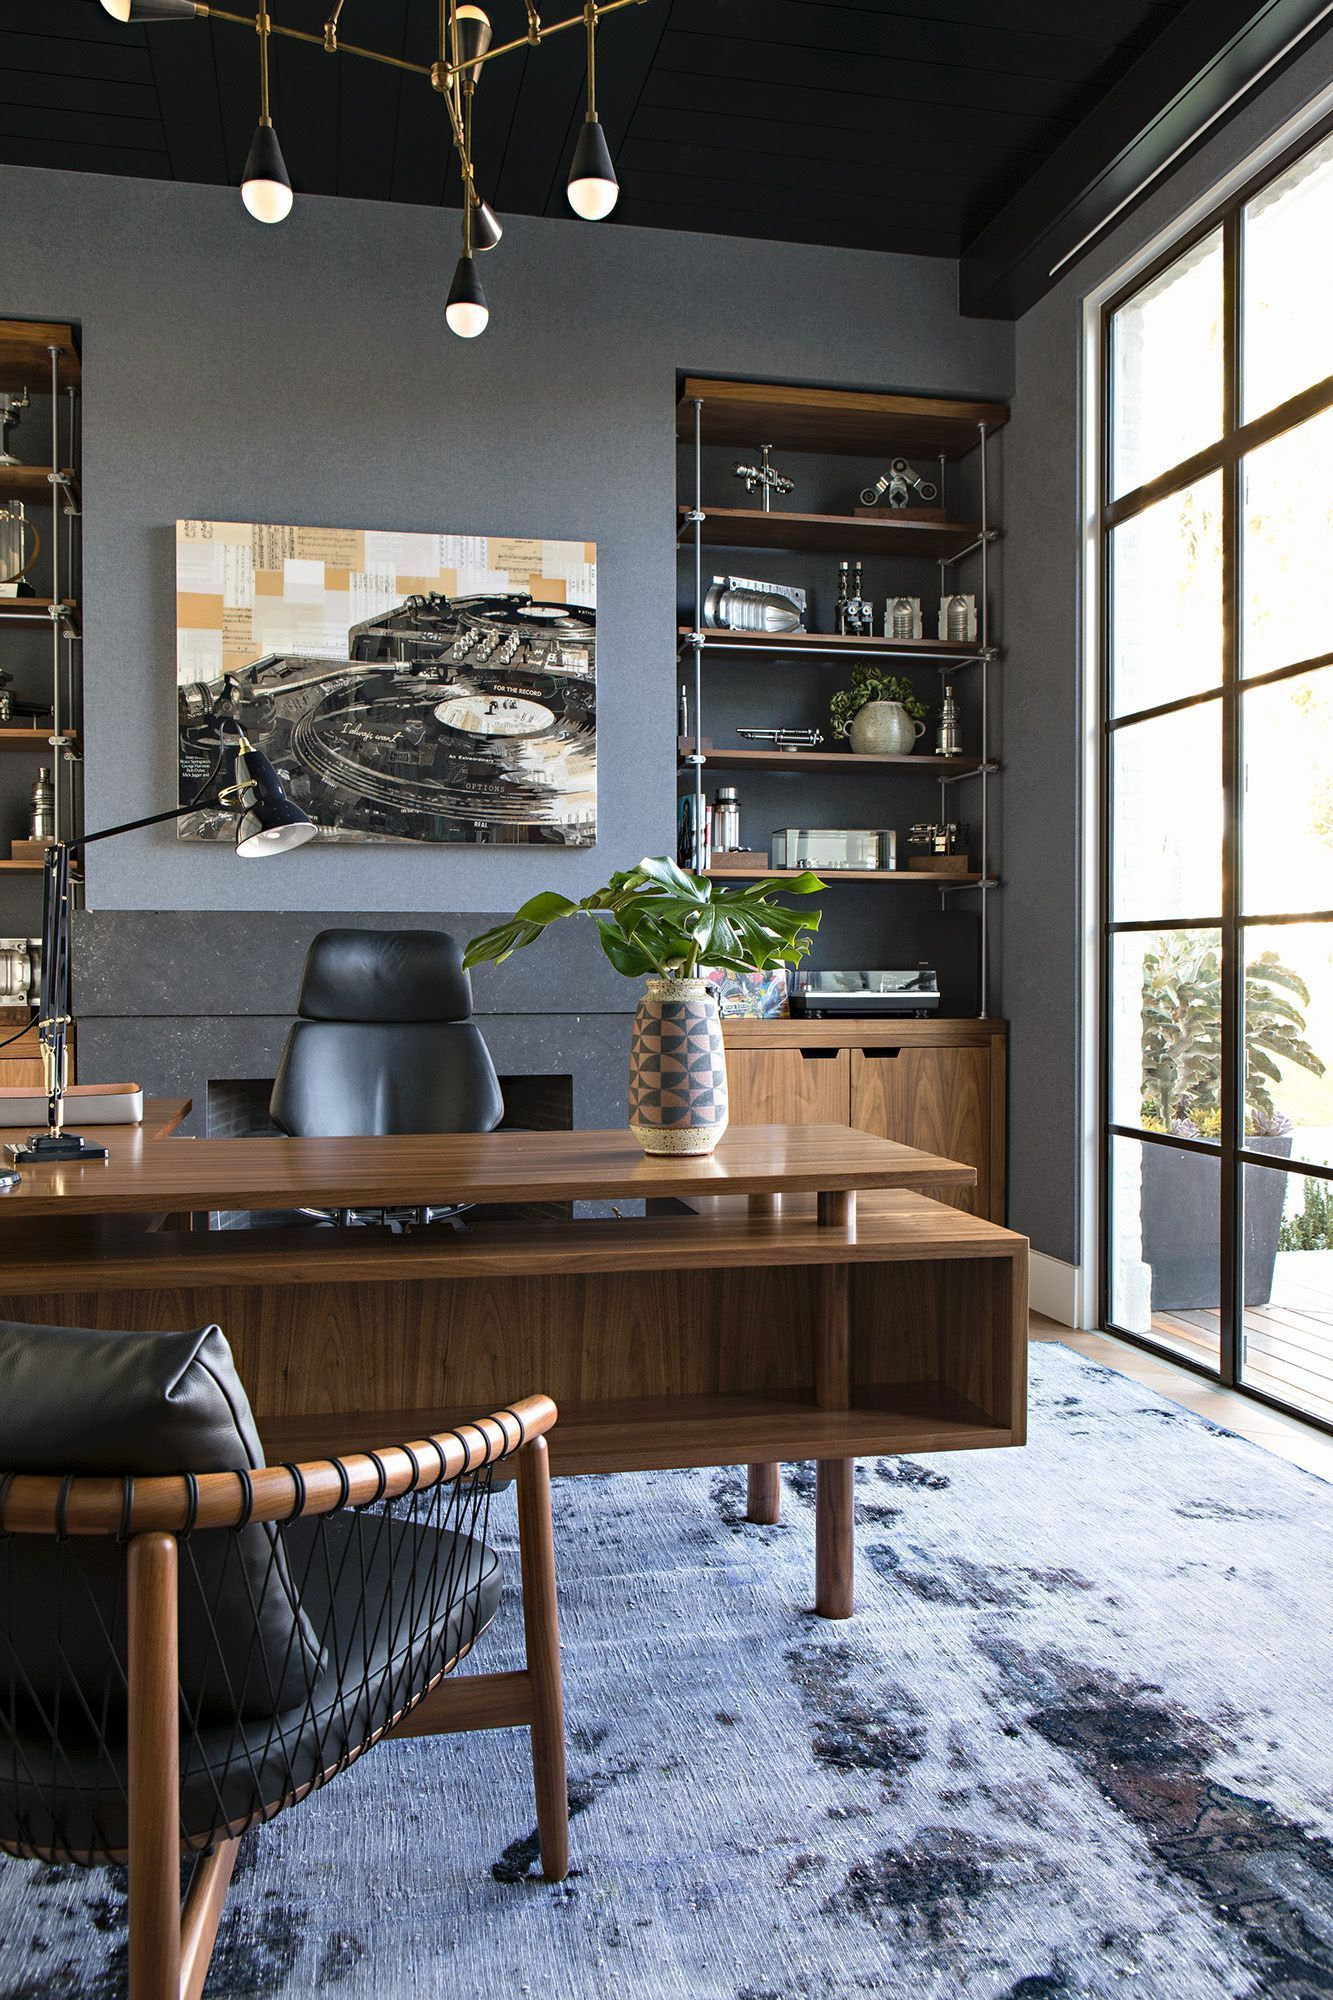 Captivating Find Home Office Ideas, Including Ideas For A Small Space, Desk Ideas,  Layouts, And Cabinets.